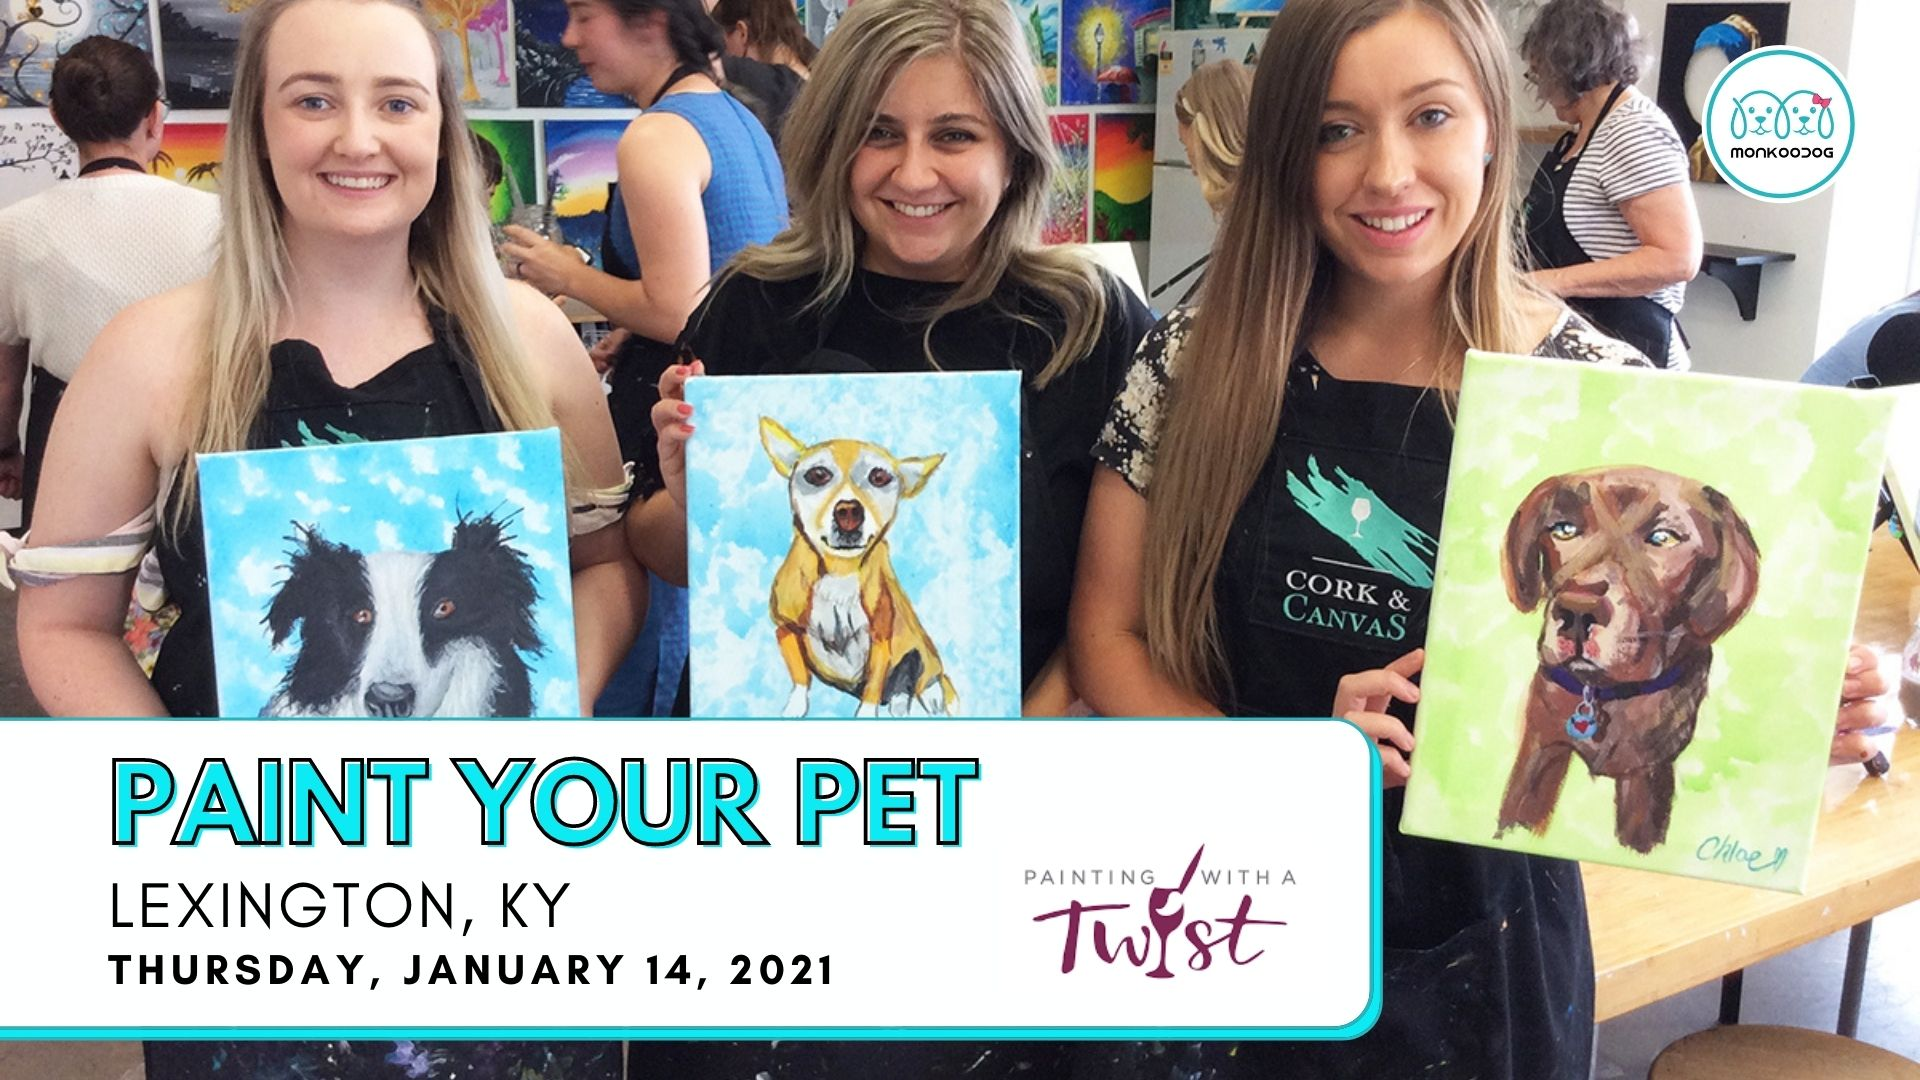 Paint Your Pet In Studio Event By Painting With A Twist Monkoodog